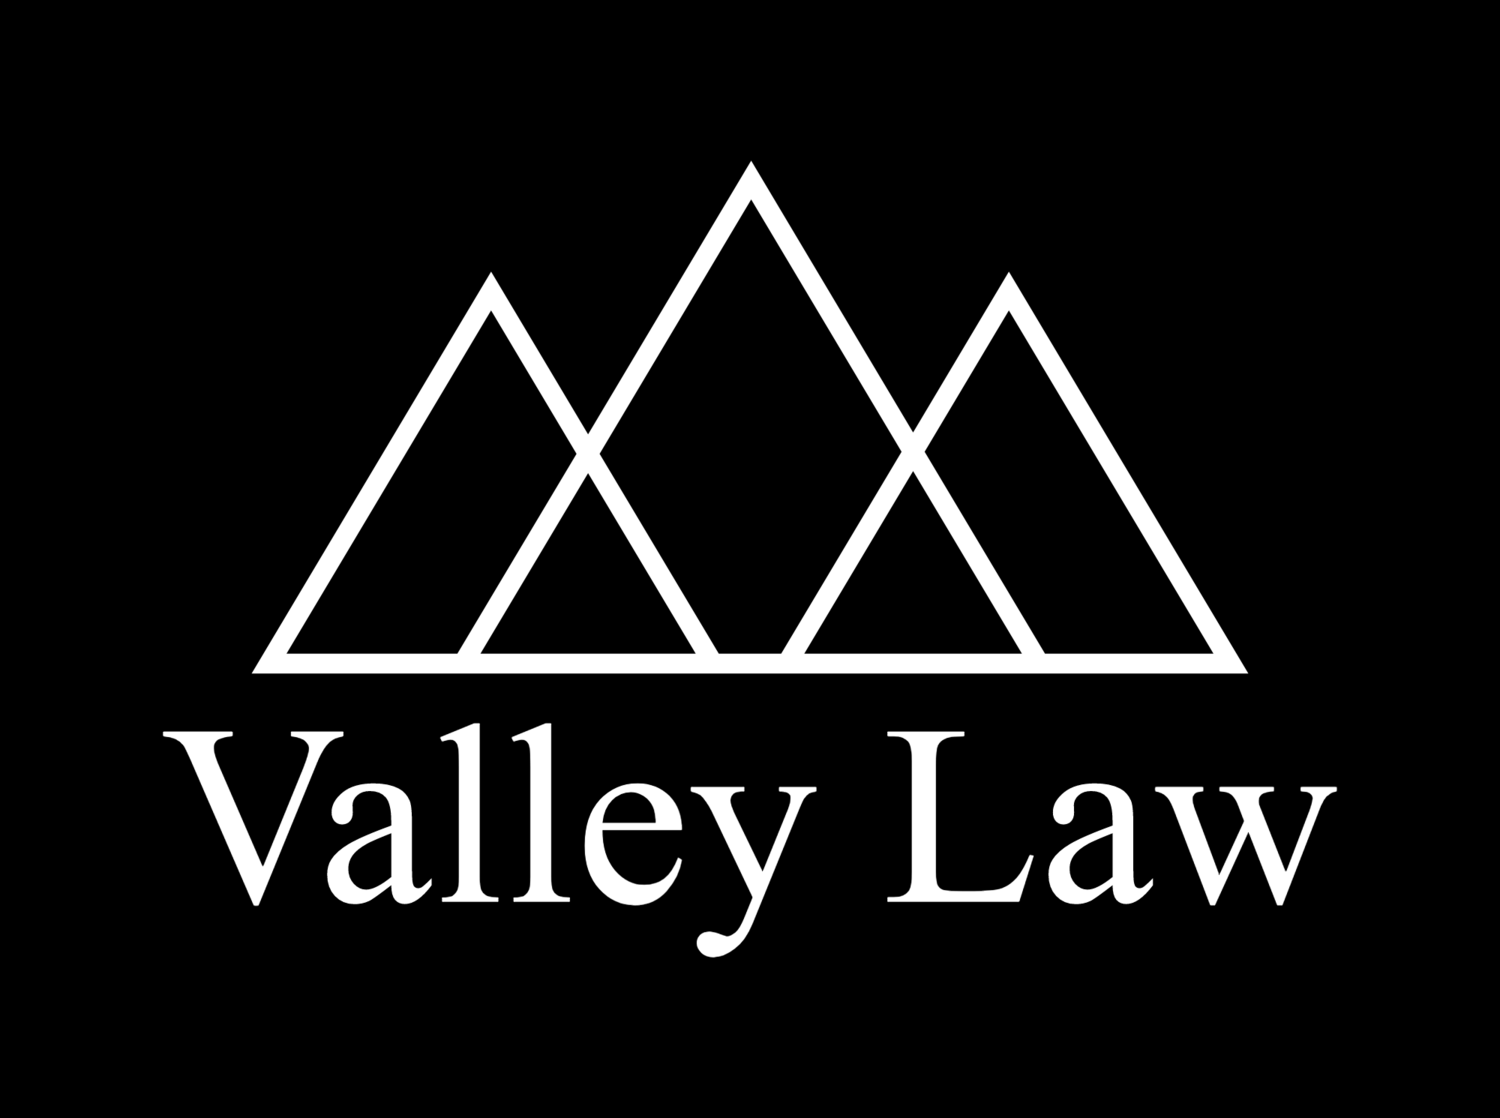 Valley Law